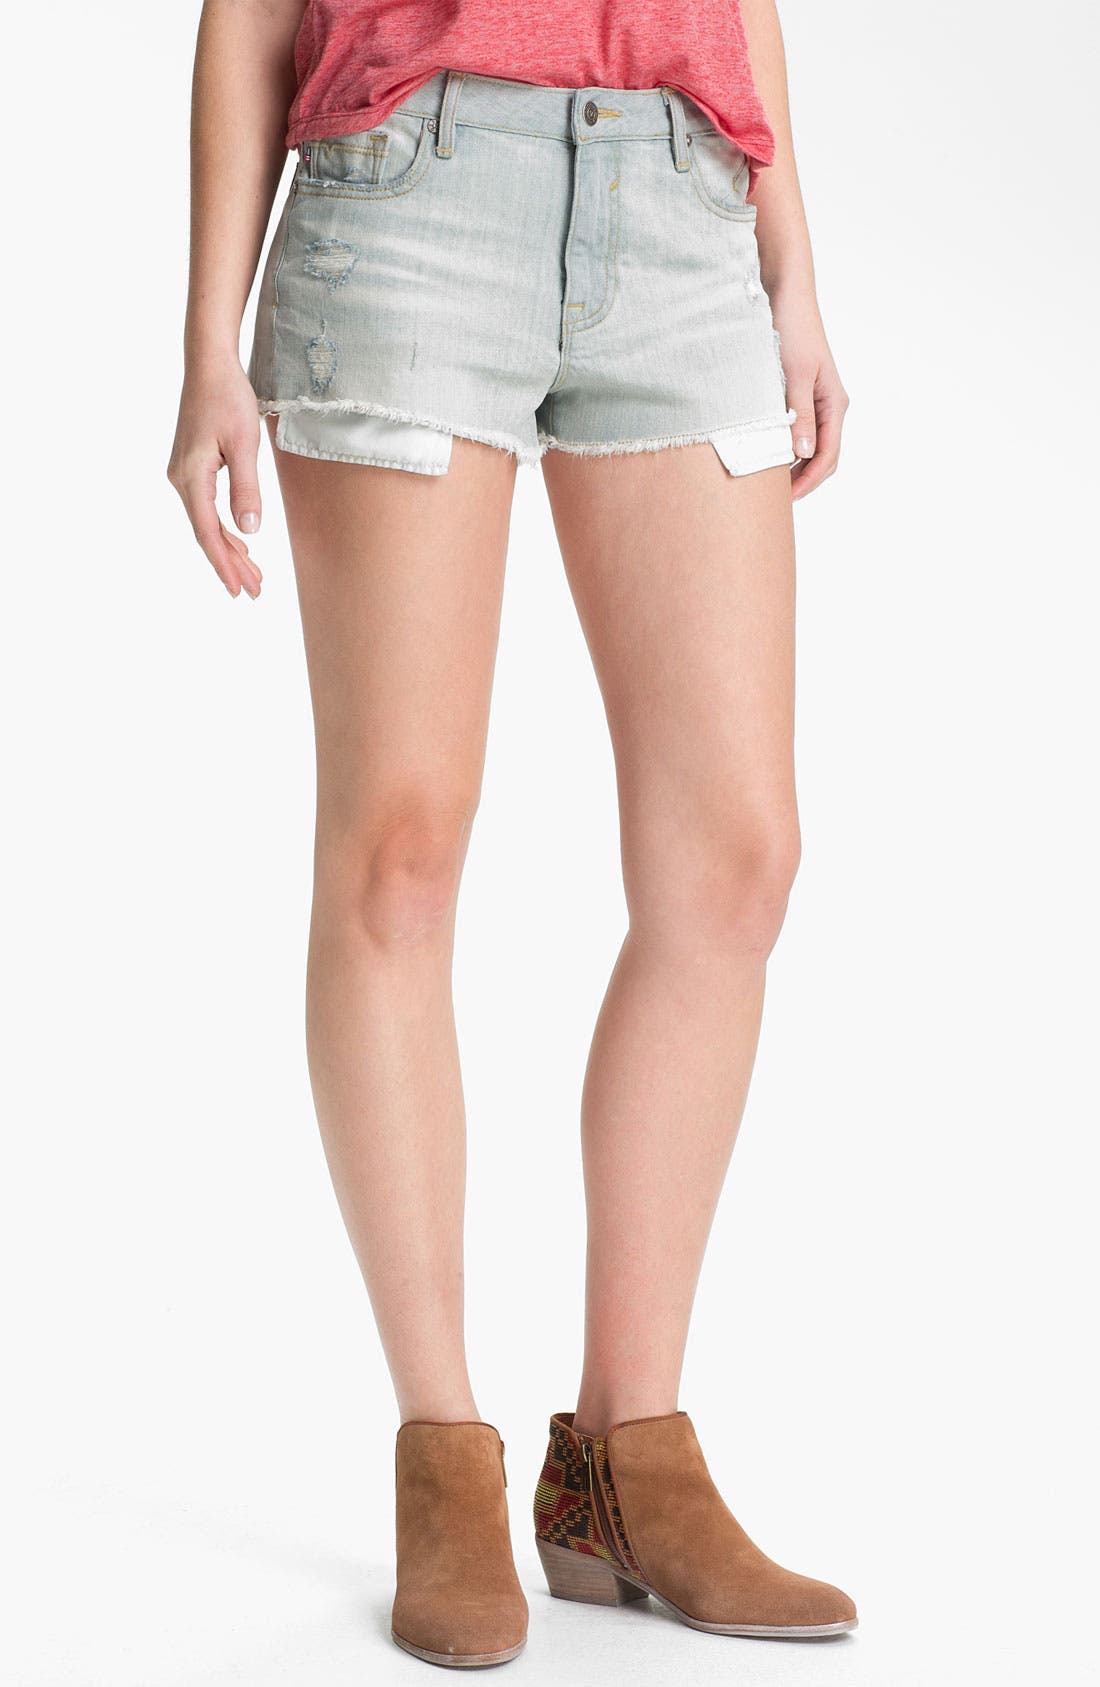 Alternate Image 1 Selected - Vigoss Distressed High-Waist Cutoff Denim Shorts (Juniors)